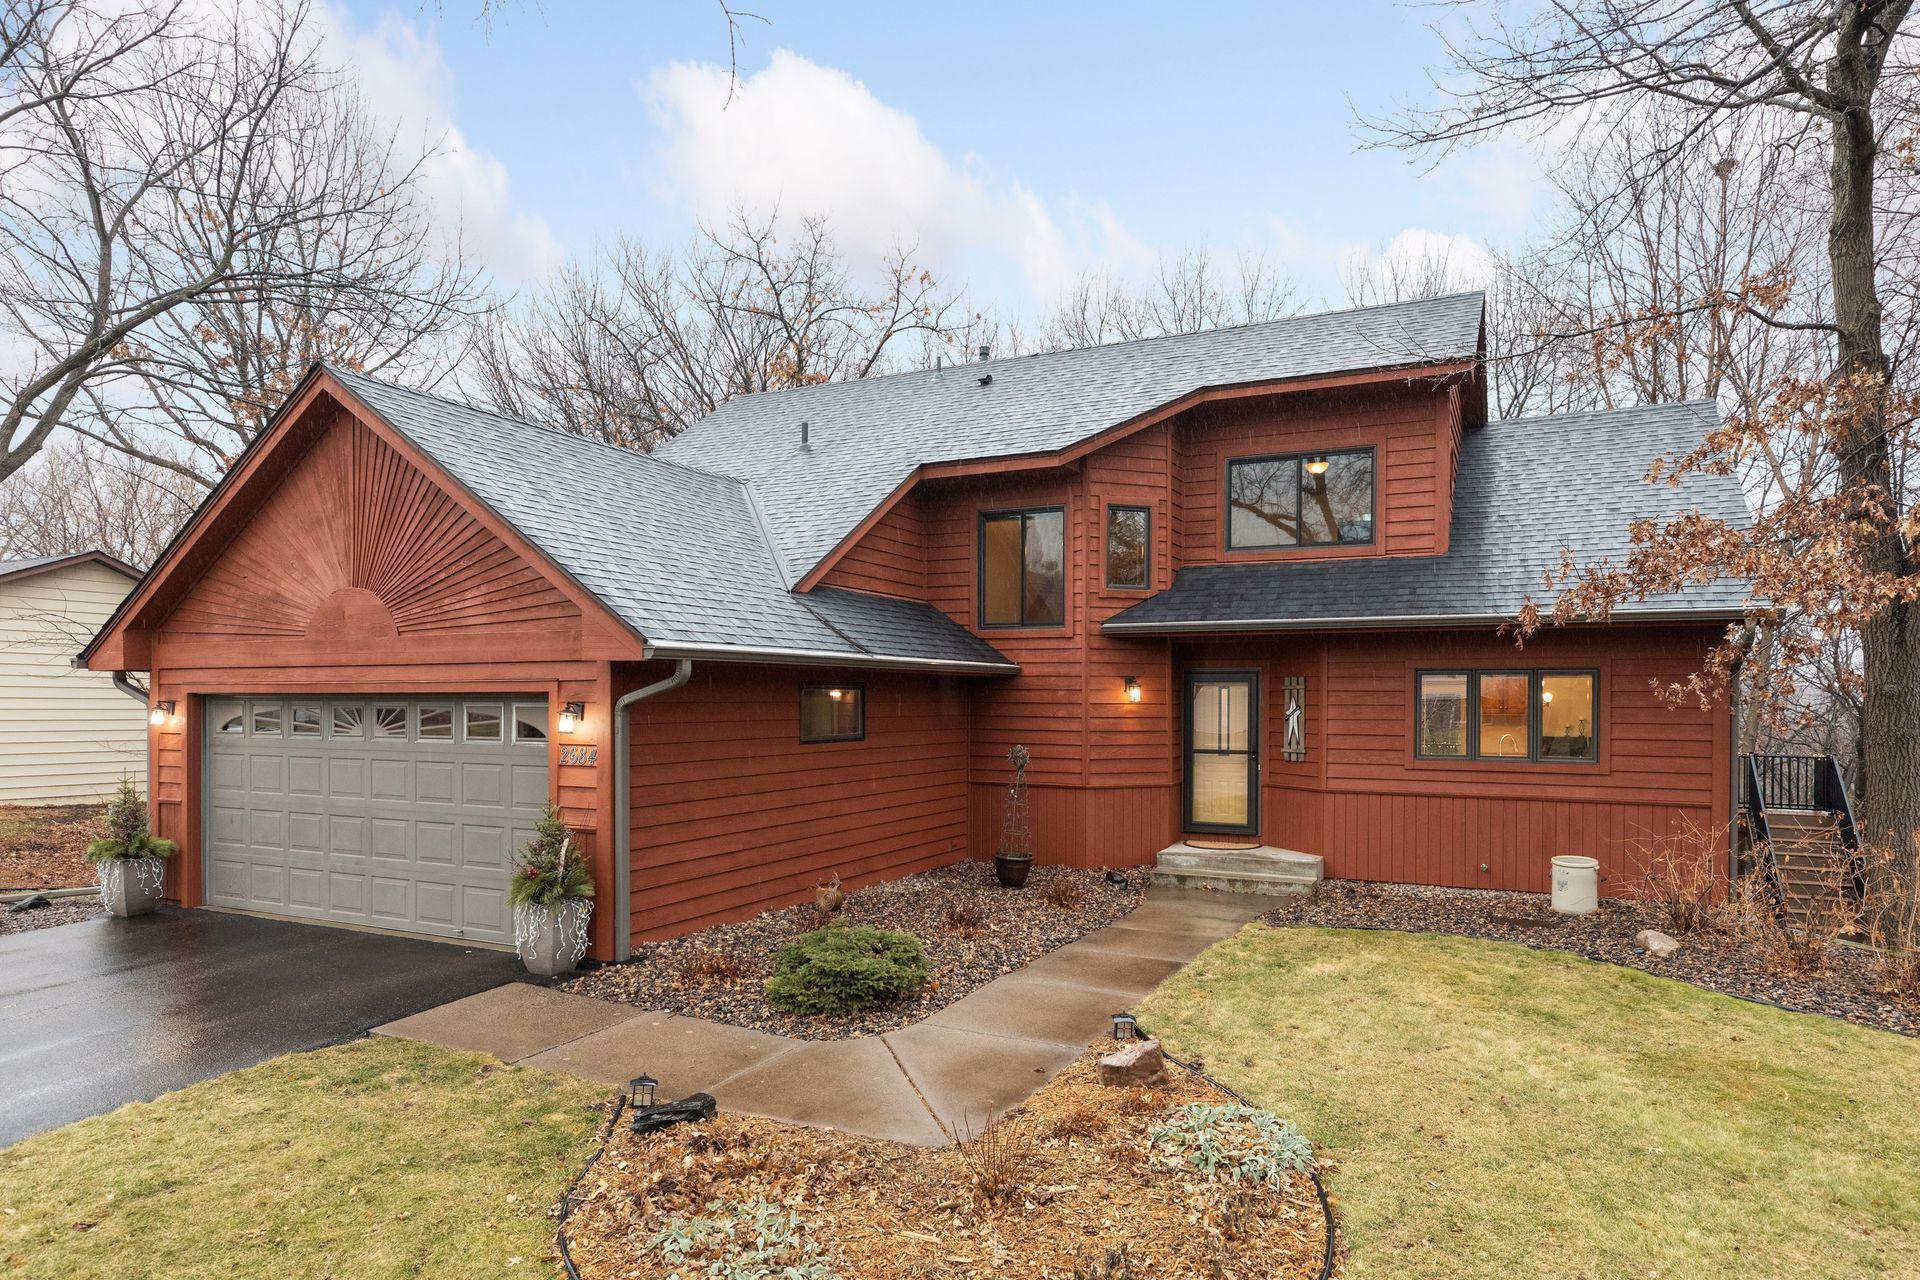 2684 Borden Way Property Photo - Inver Grove Heights, MN real estate listing